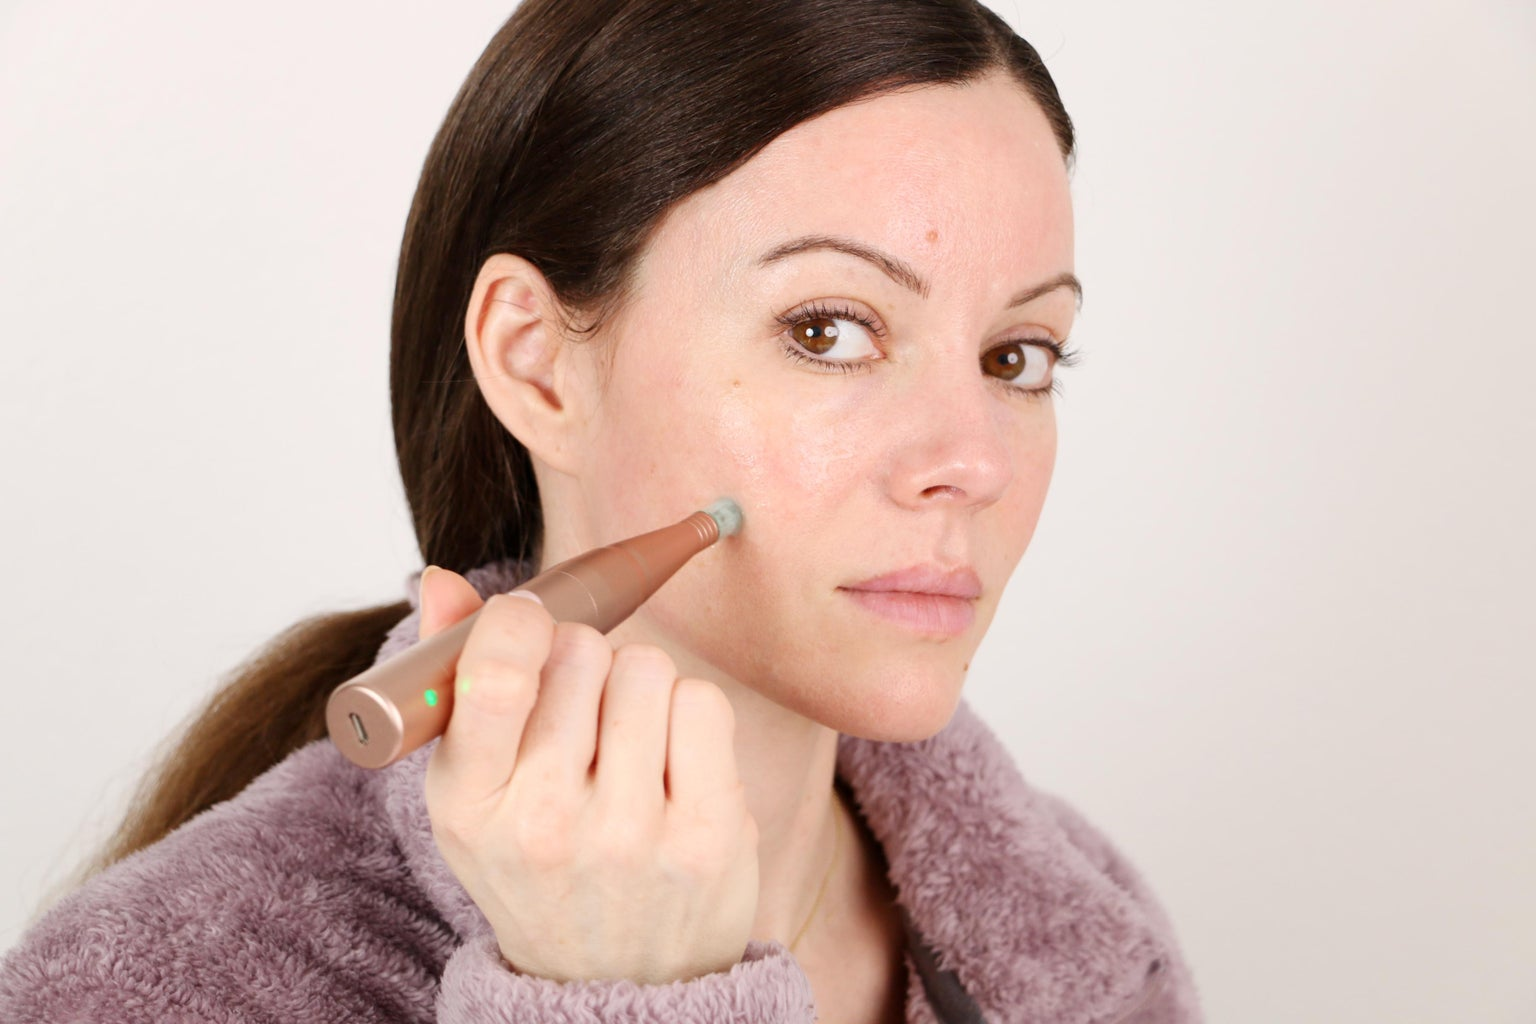 Order of Application & Nano Needling How To